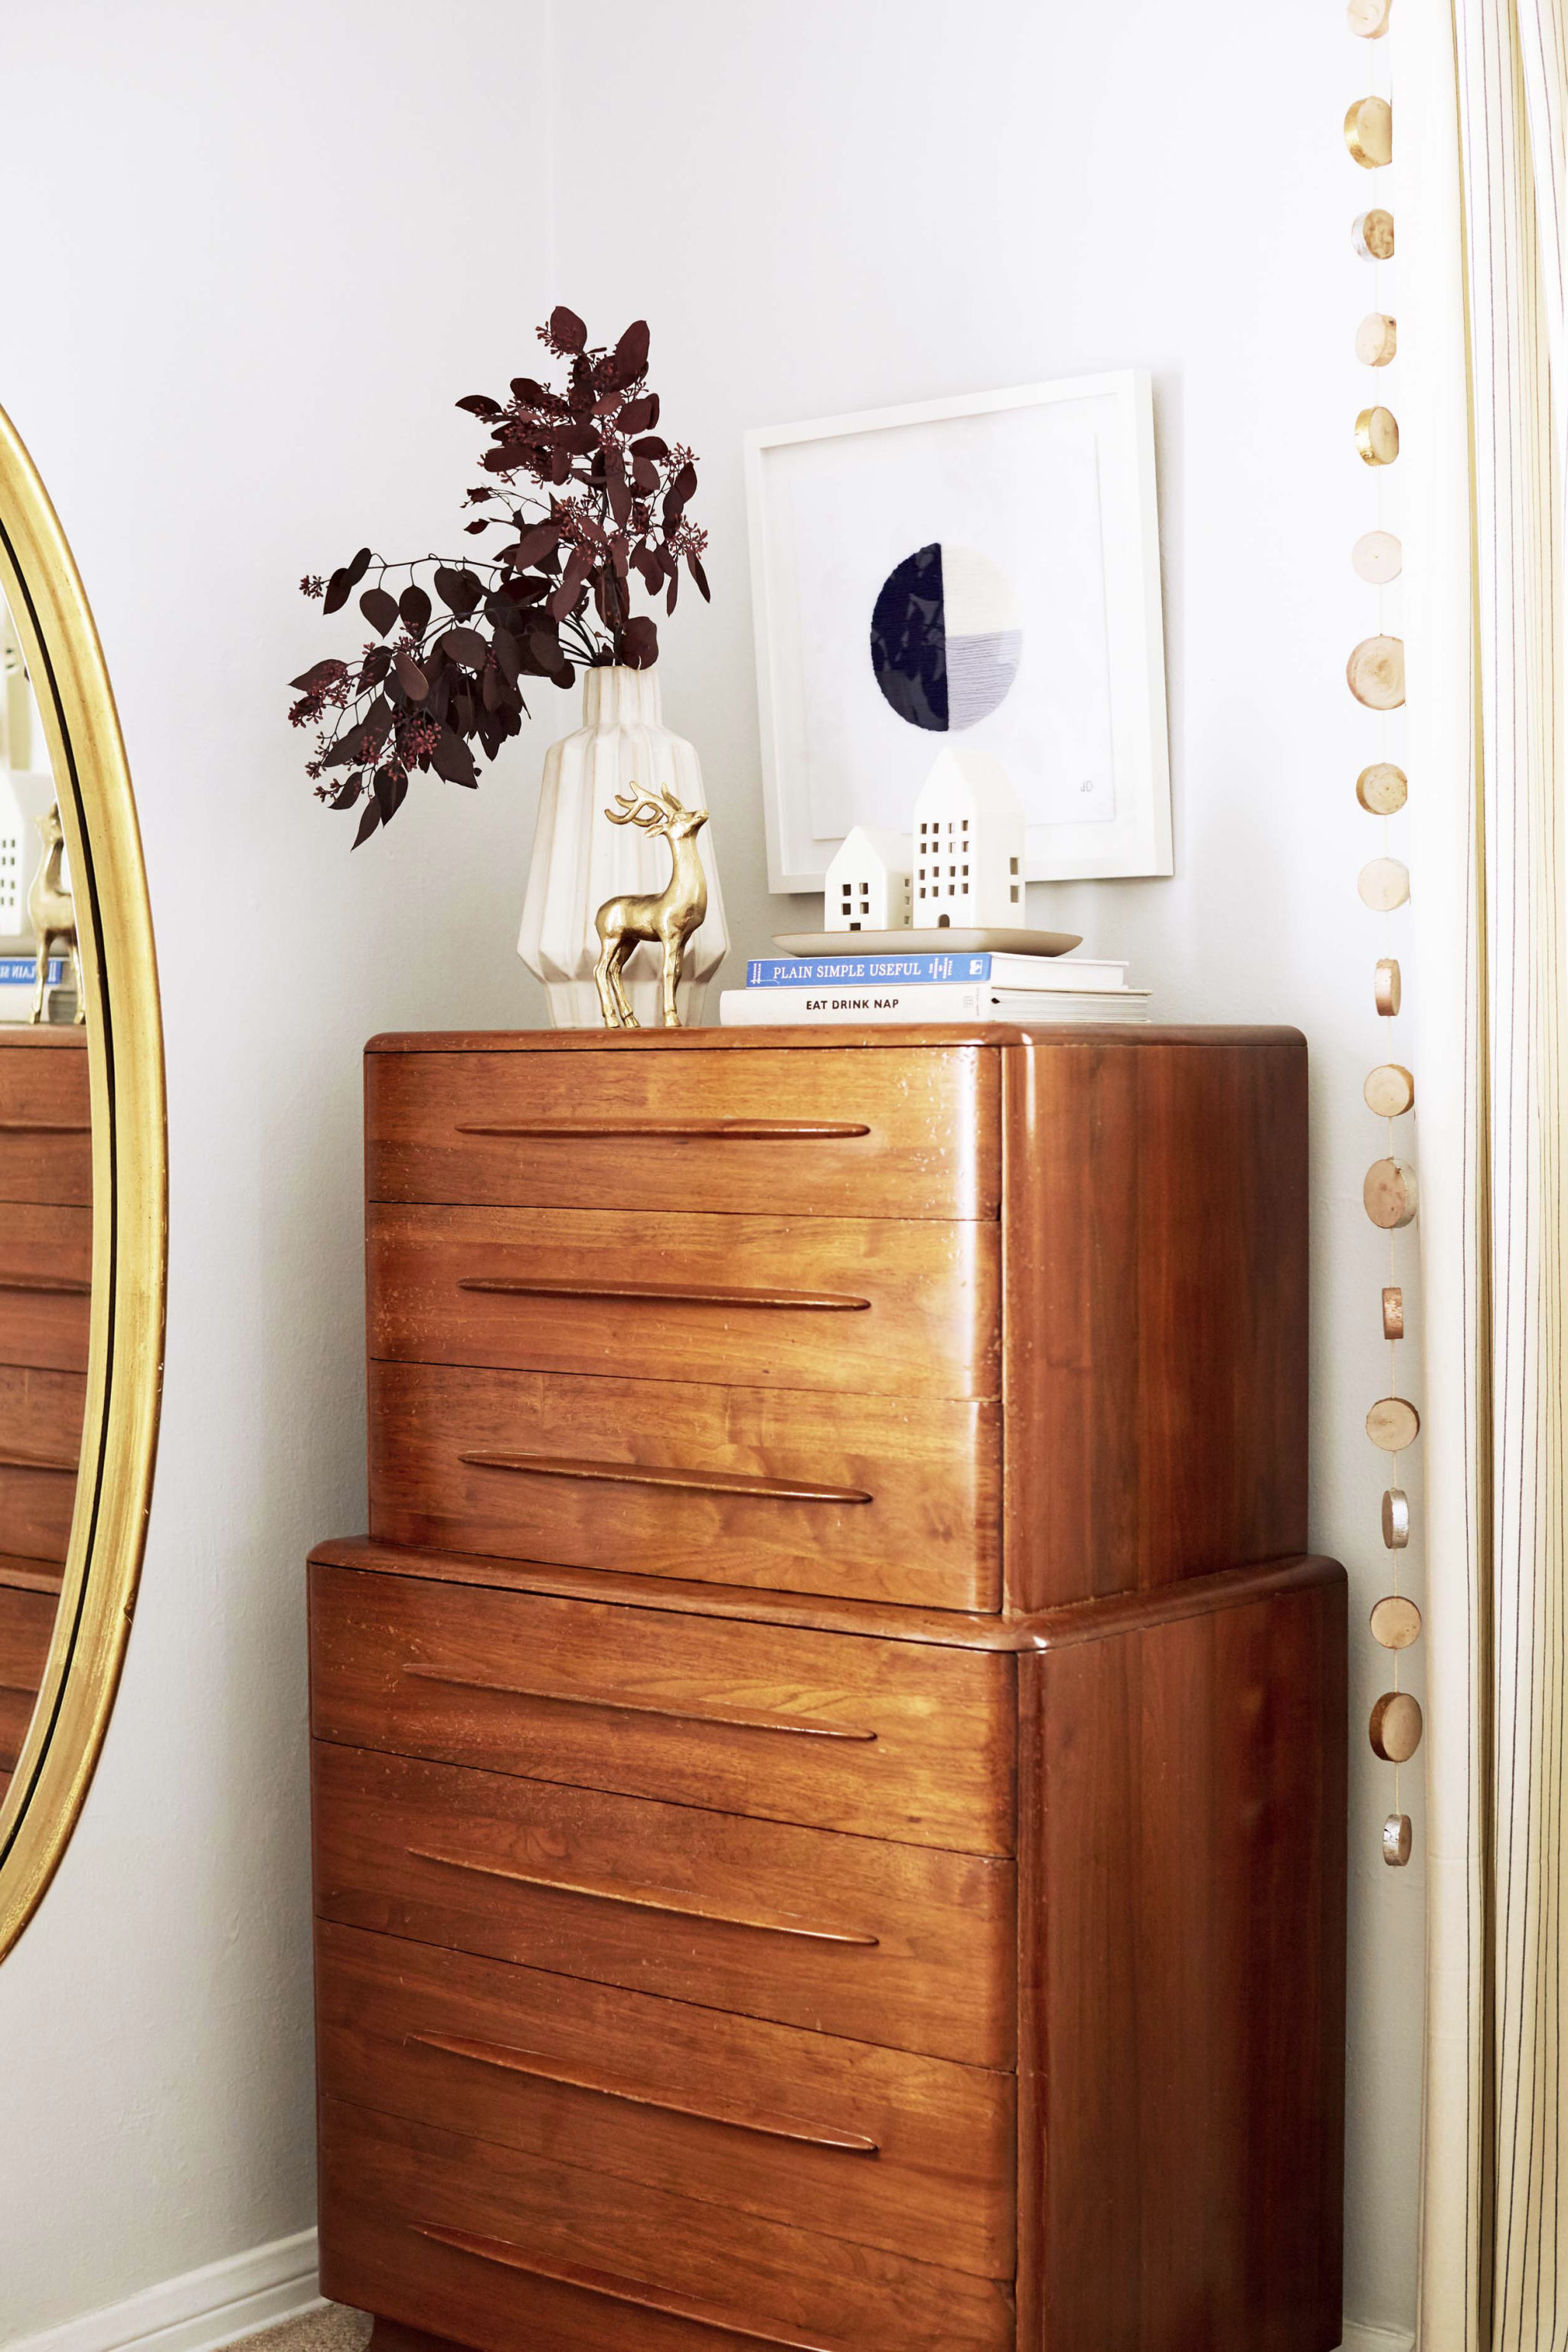 GINNY_MACDONALD_HOLIDAY_BEDROOM_TALLBOY_MID_CENTURY_WOOD_DRESSER